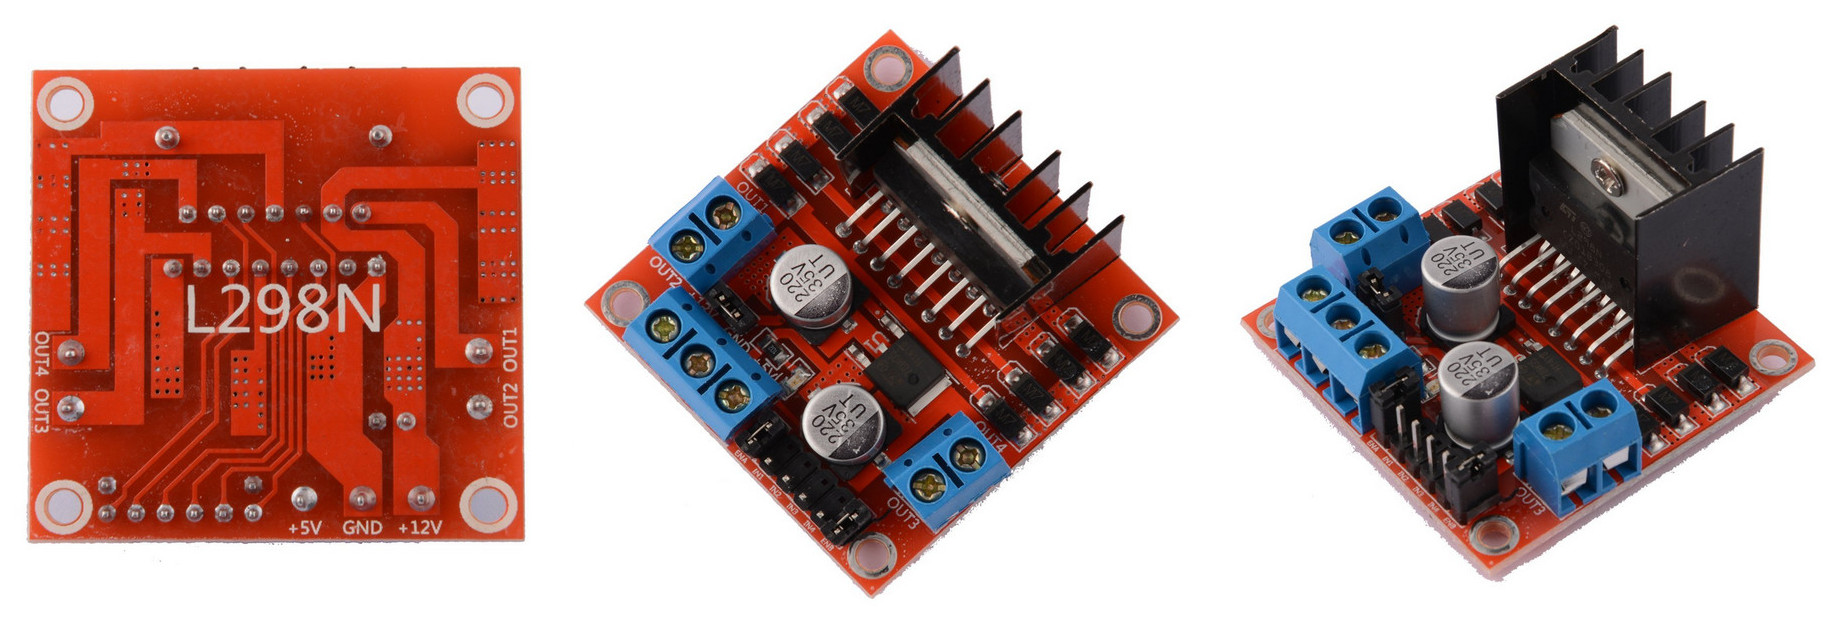 Roach V2 A Cheap Microbit Robot Details About Pcb Printed Circuit Board Breadboard Intermediate Kit Pack Size Ie You Can Move To 4 Aa Cells And Therefore Reduces The Robots Weight Searching Joys Of Amazon Ebay Selected Xl6009 Module